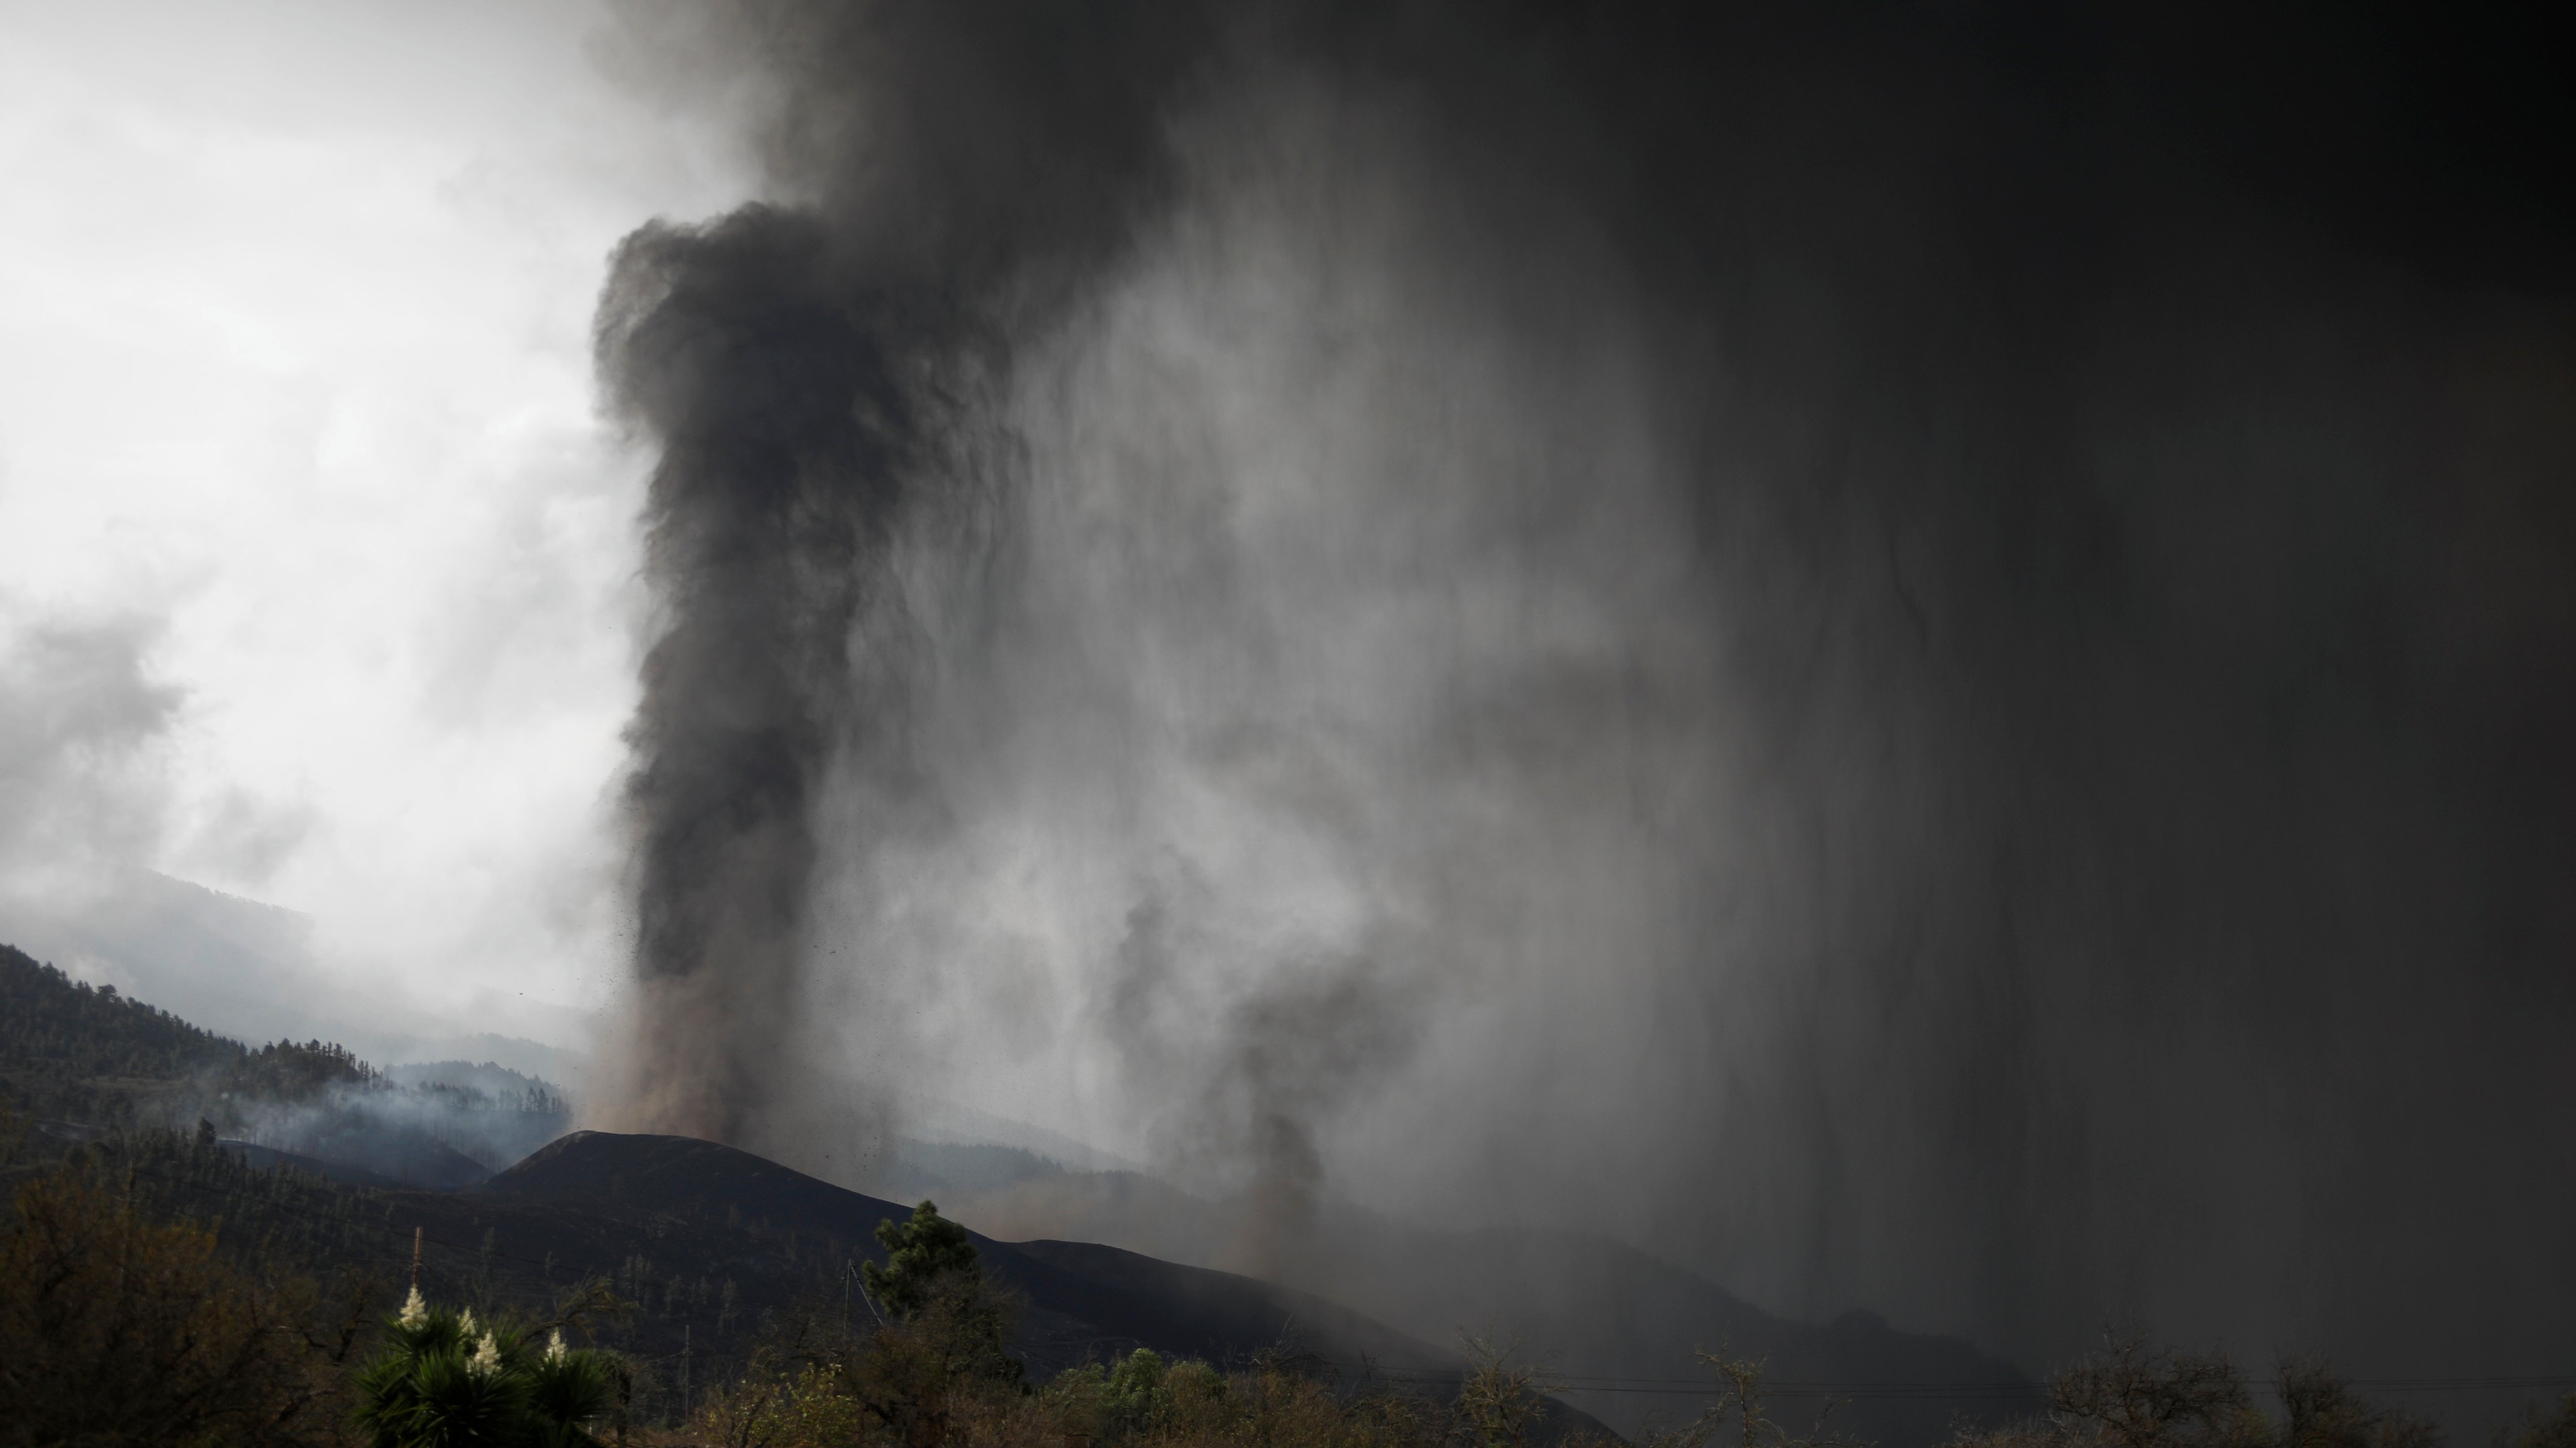 The Cloud Of Ash And Sulfur Dioxide Expelled By The Volcano Could Reach The Peninsula On Thursday